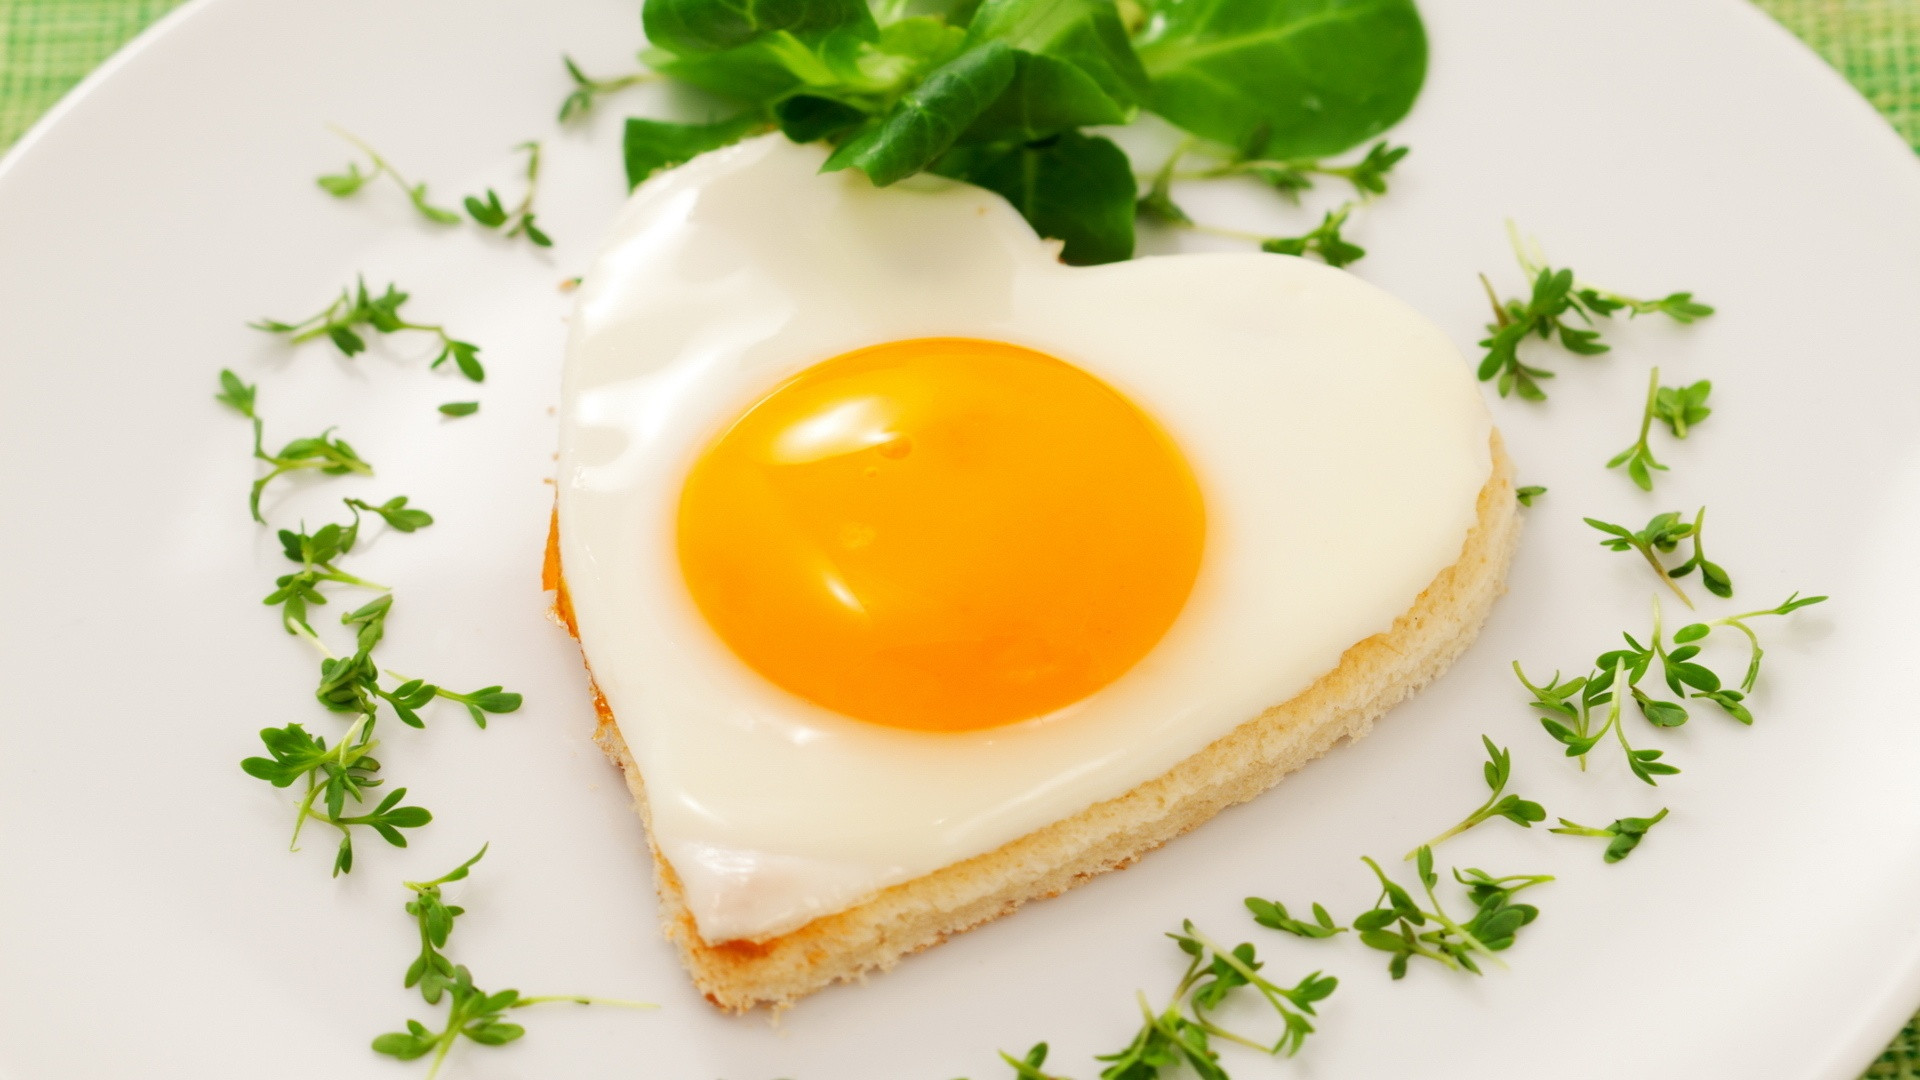 Heart Healthy Breakfast Foods  7 Foods for a Hearty Dose of Heart Health PokitBlog